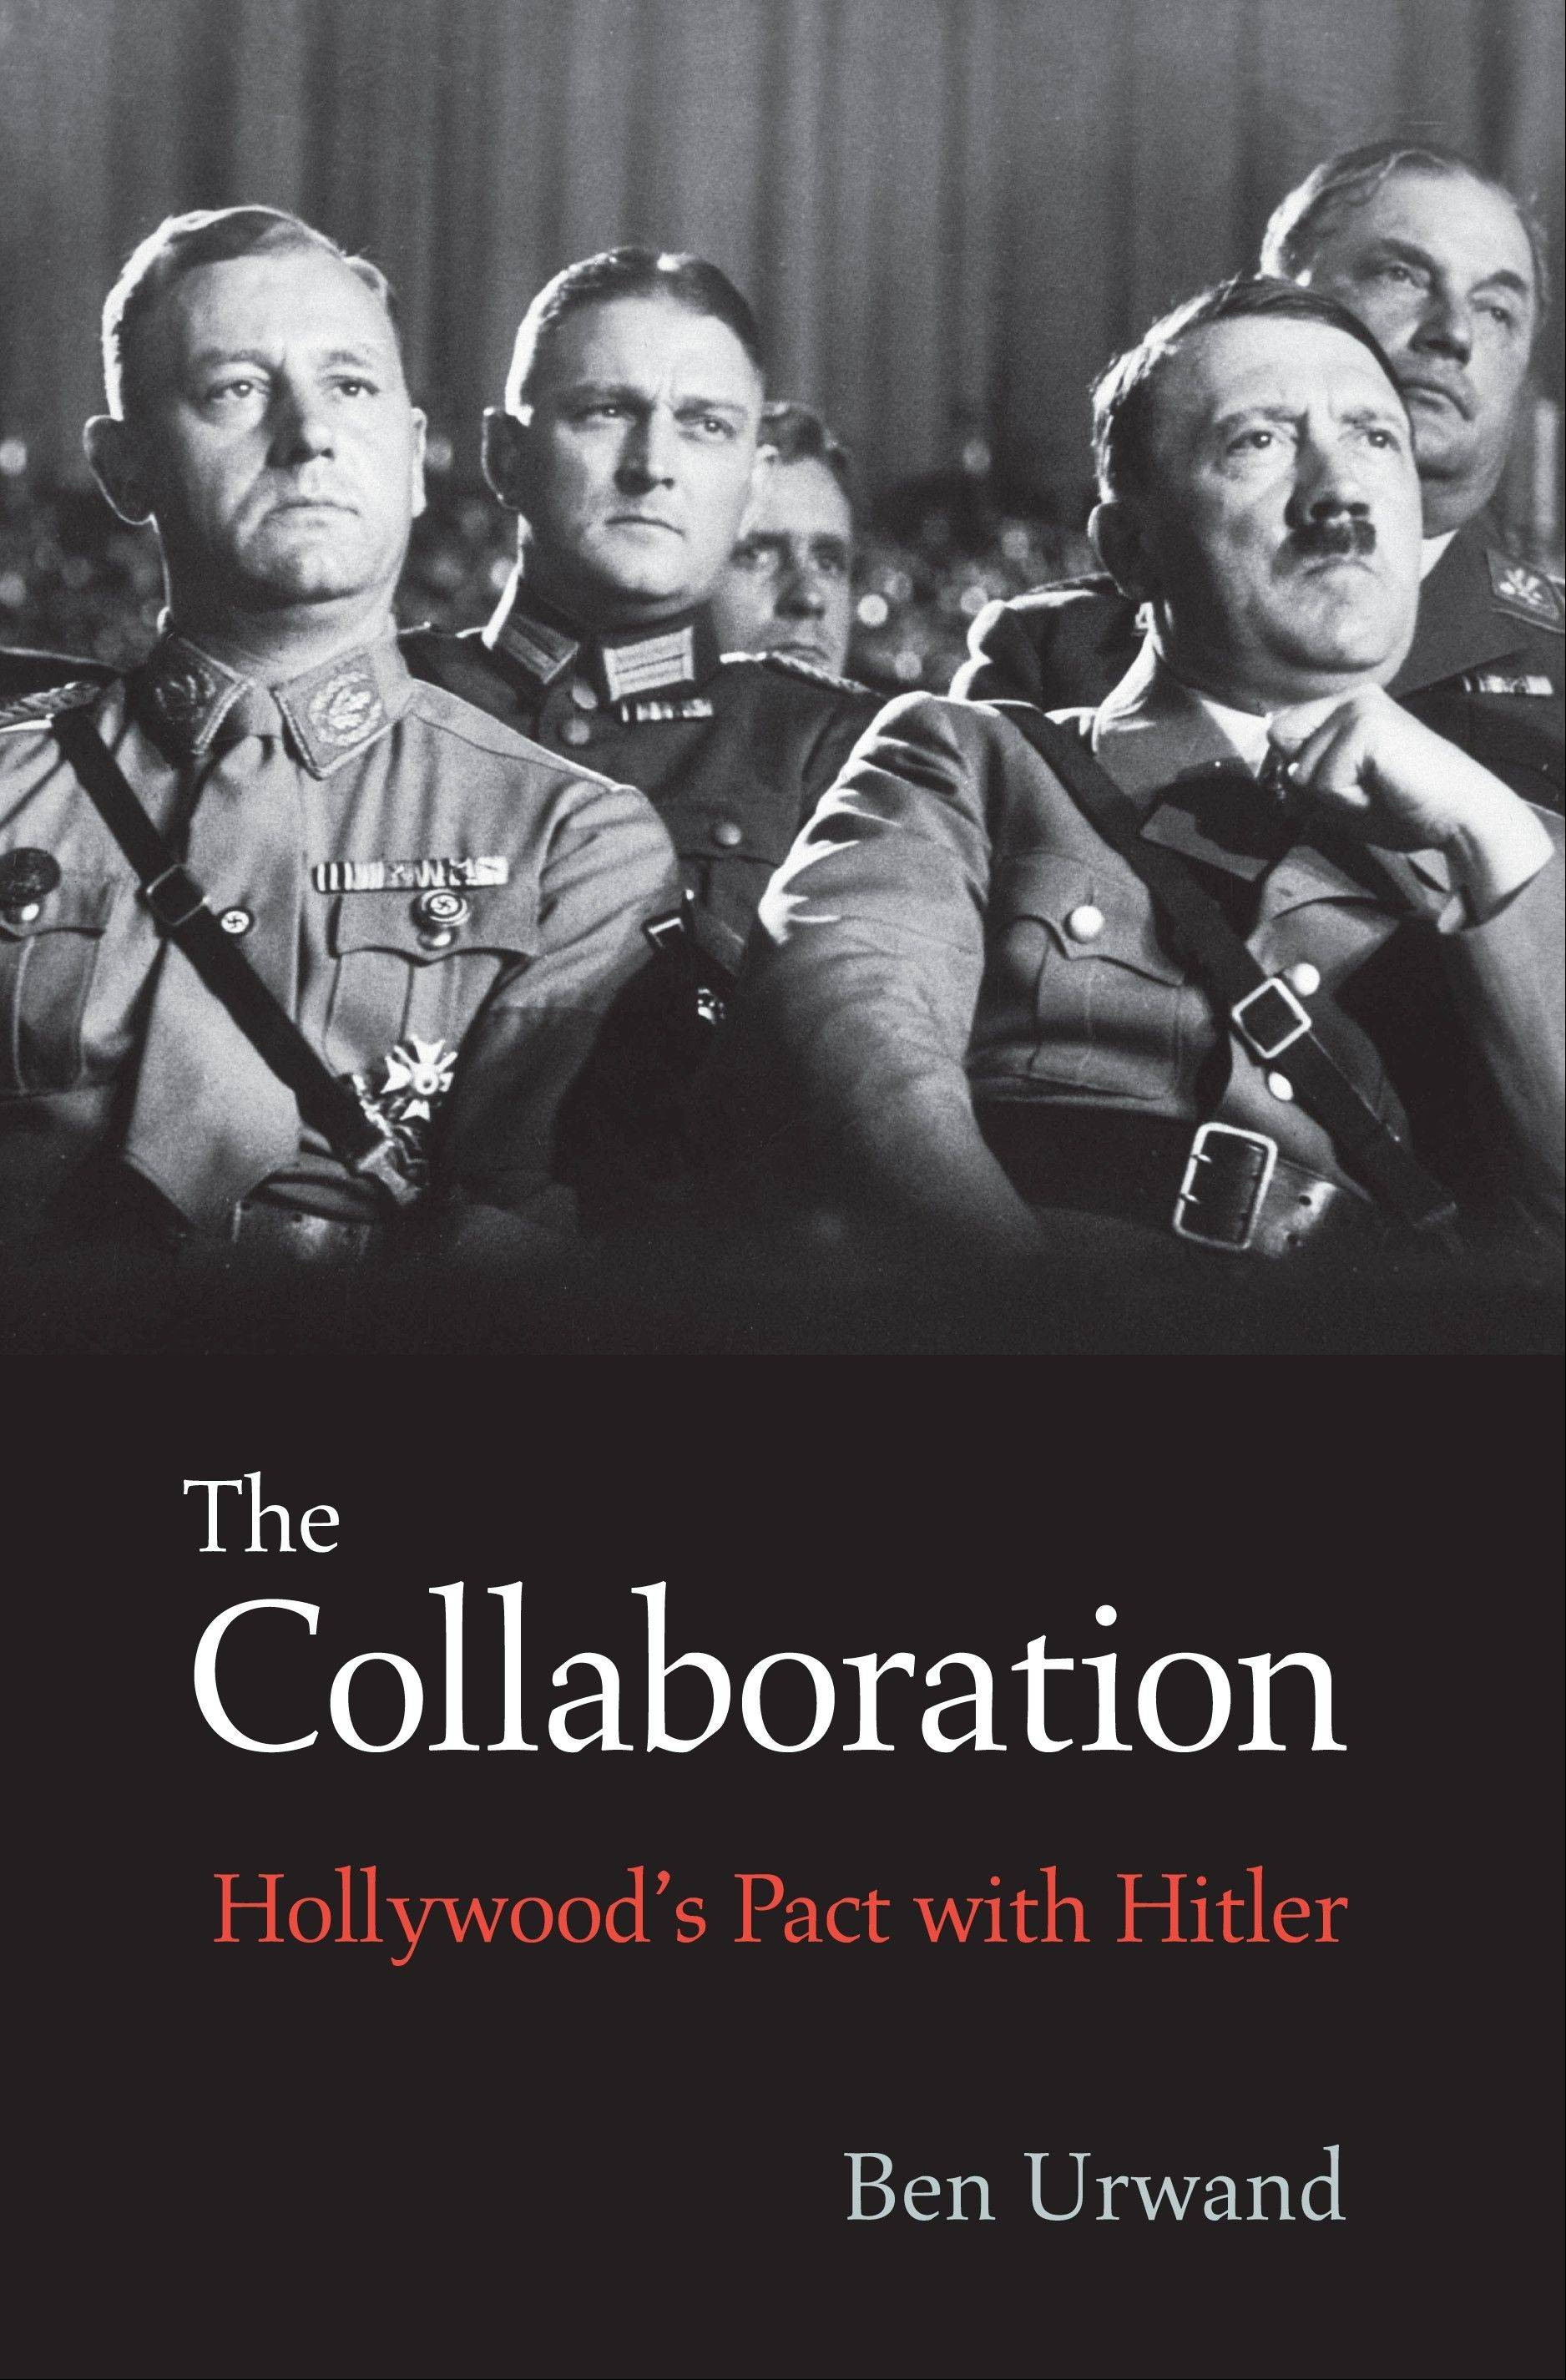 """The Collaboration: Hollywood's Pact with Hitler"" by Ben Urwand"